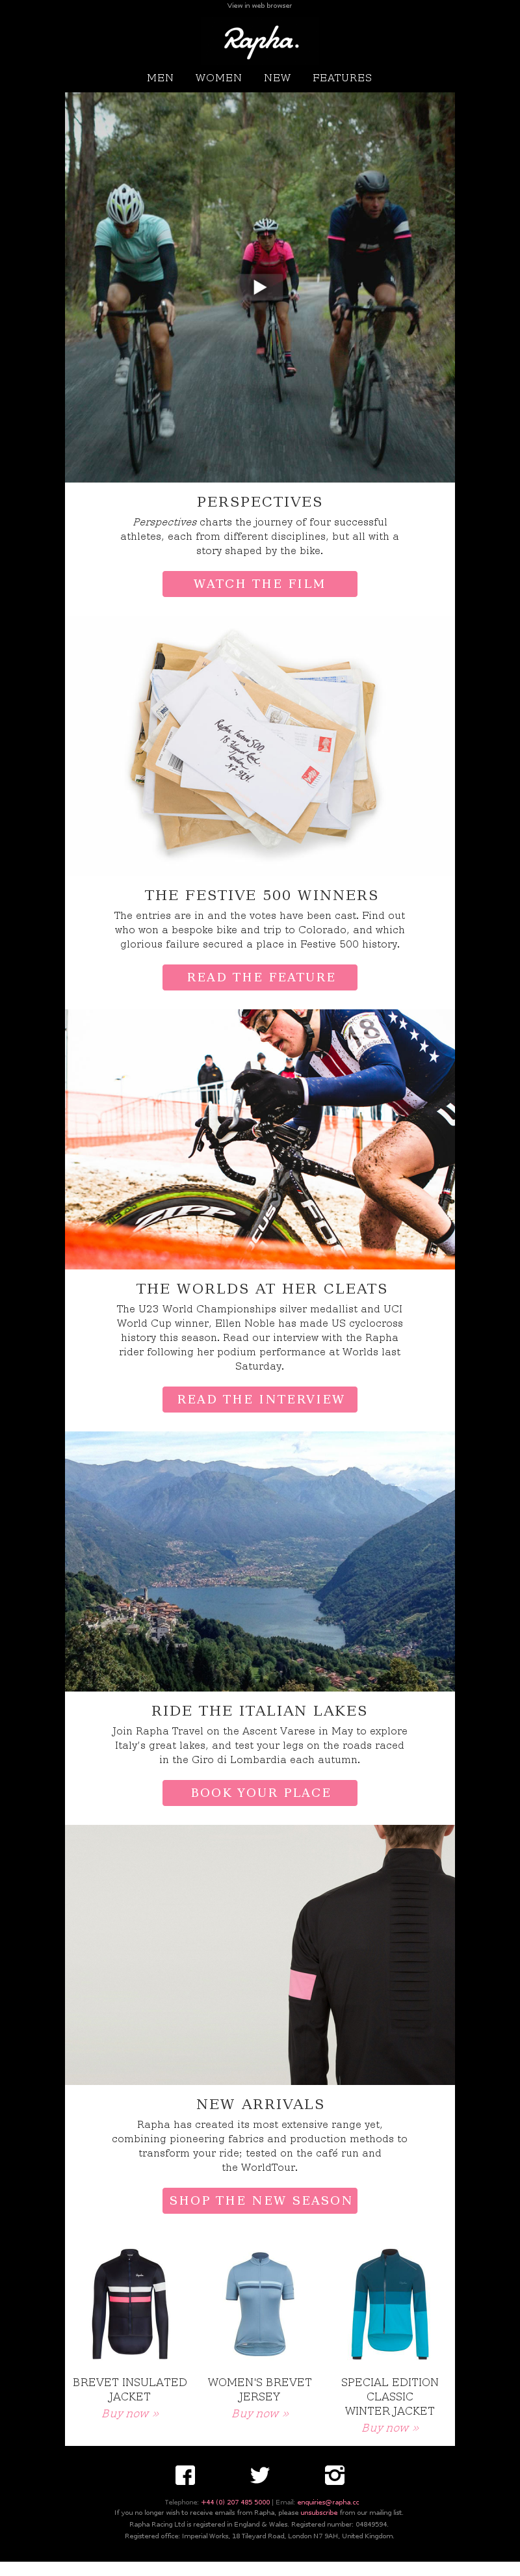 Four athletes share their perspectives on riding. View in web browser Rapha